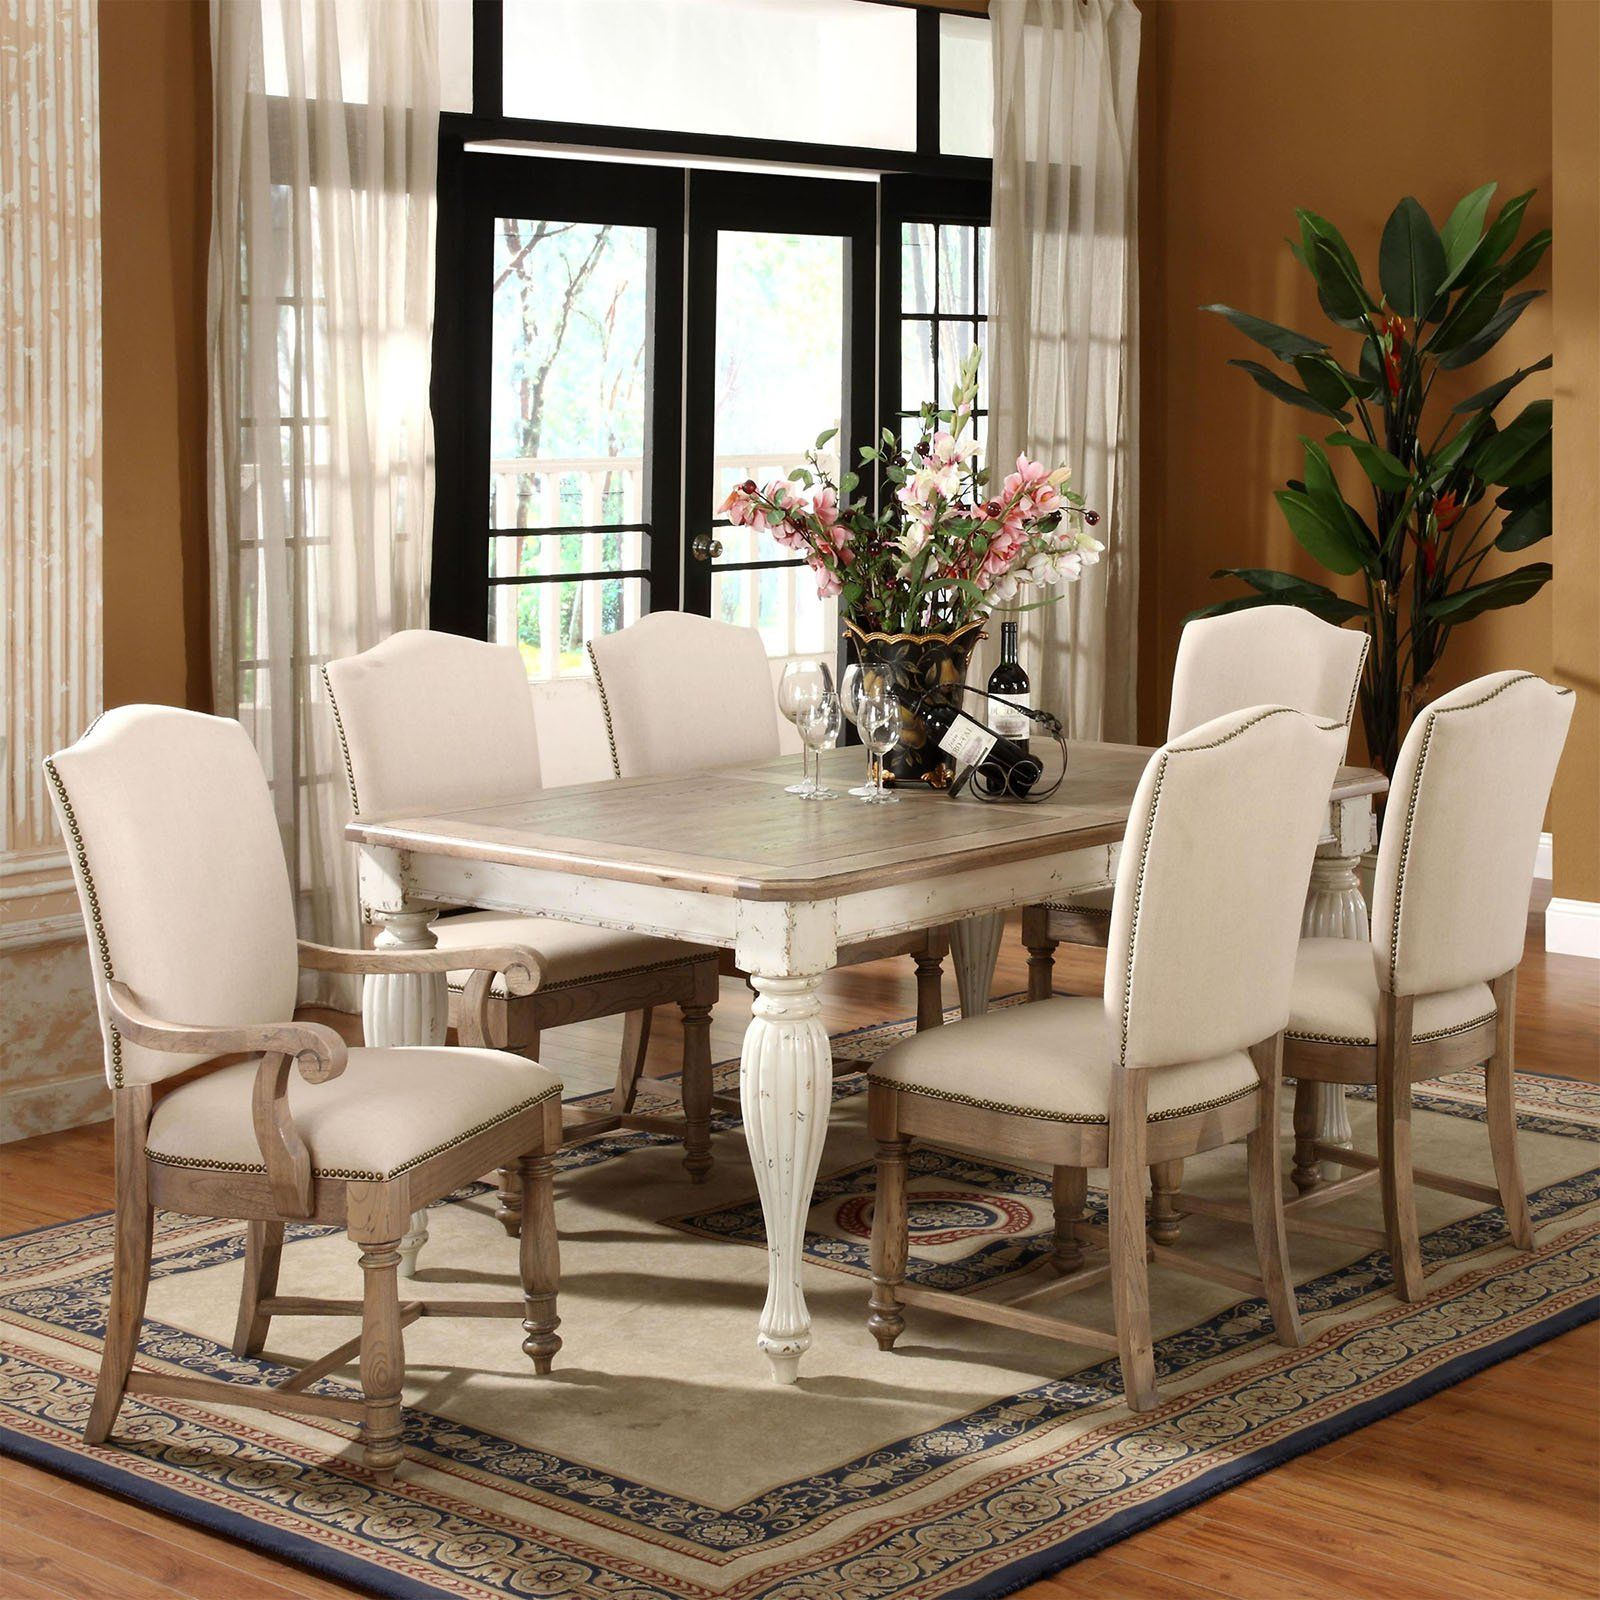 Riverside Coventry Rectangular Dining Table | Dining room sets, Round pedestal dining table ...